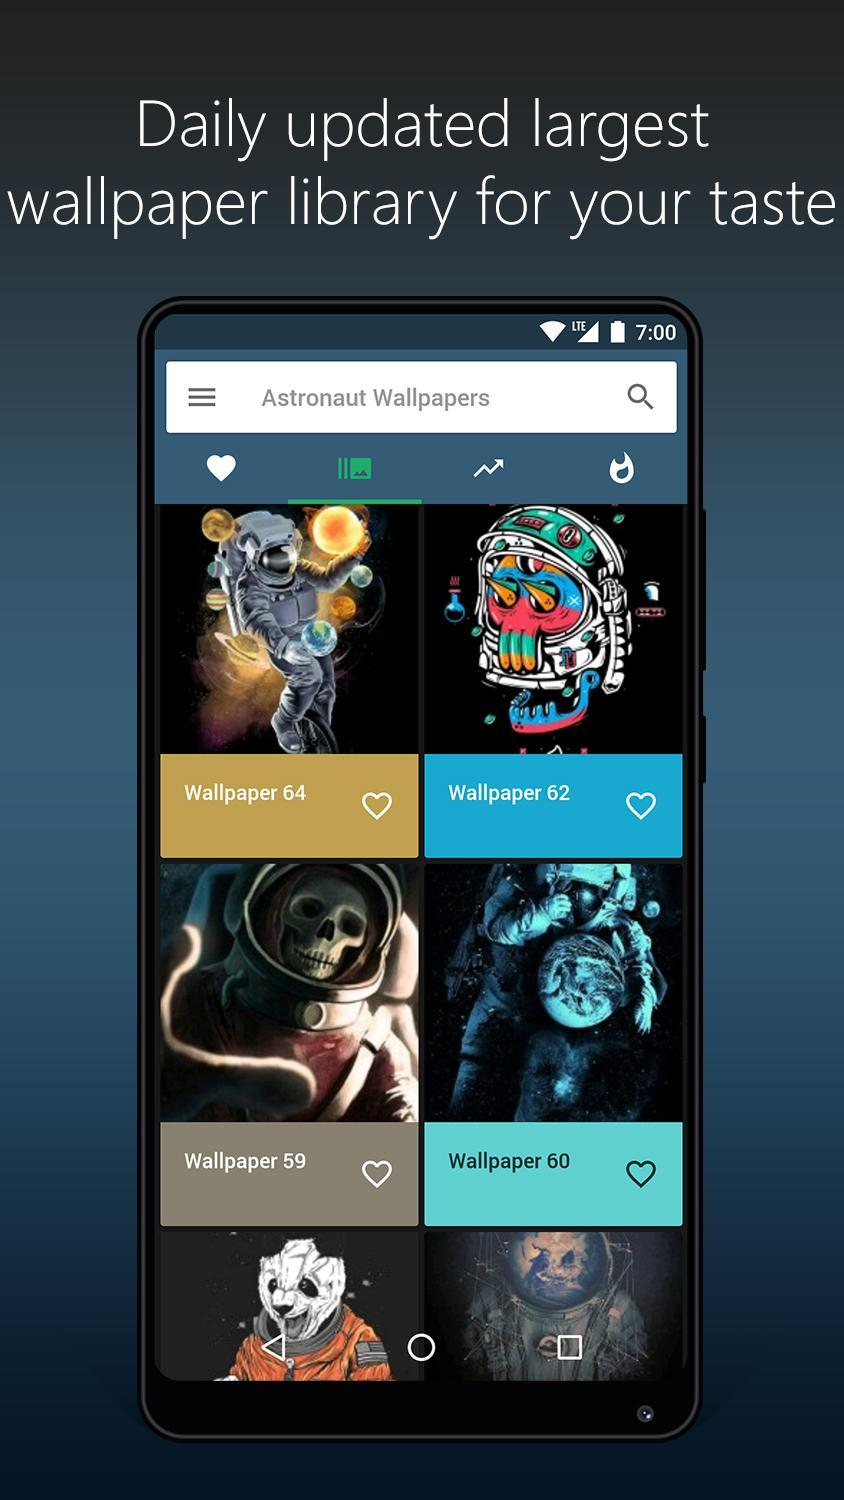 4k Astronaut Wallpapers 4k Backgrounds For Android Apk Download